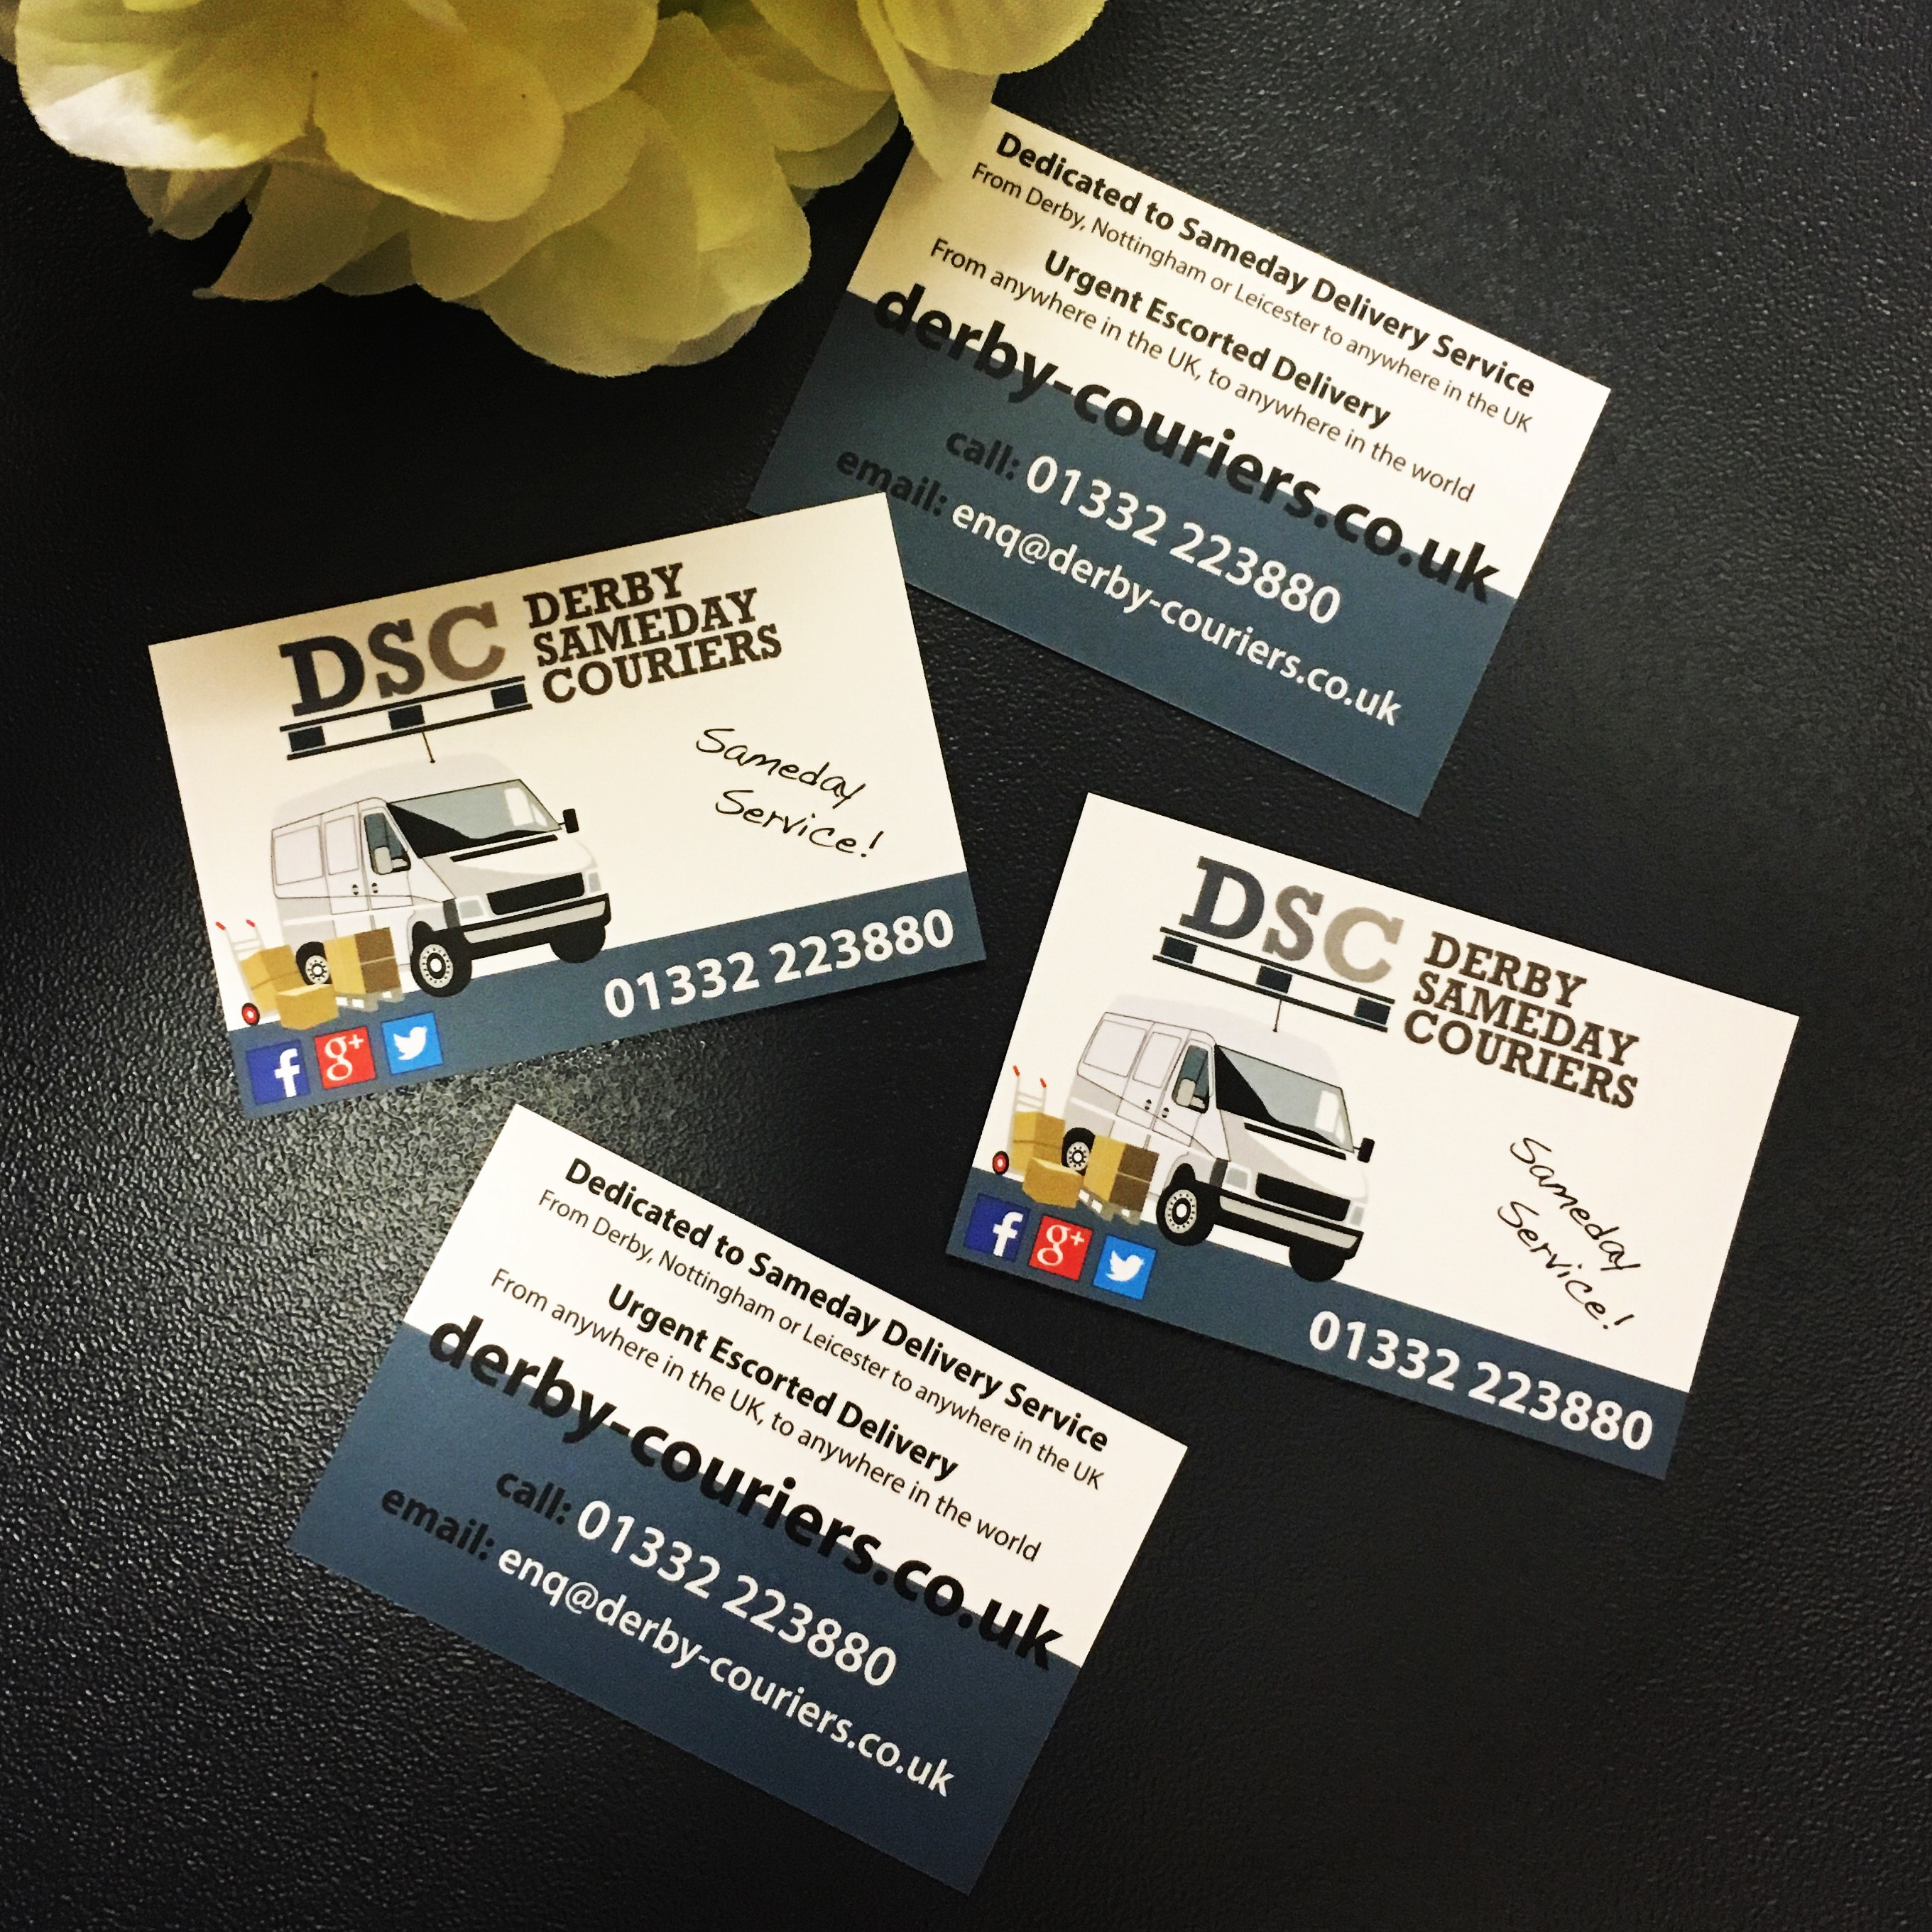 Business Cards - Derby SameDay Couriers